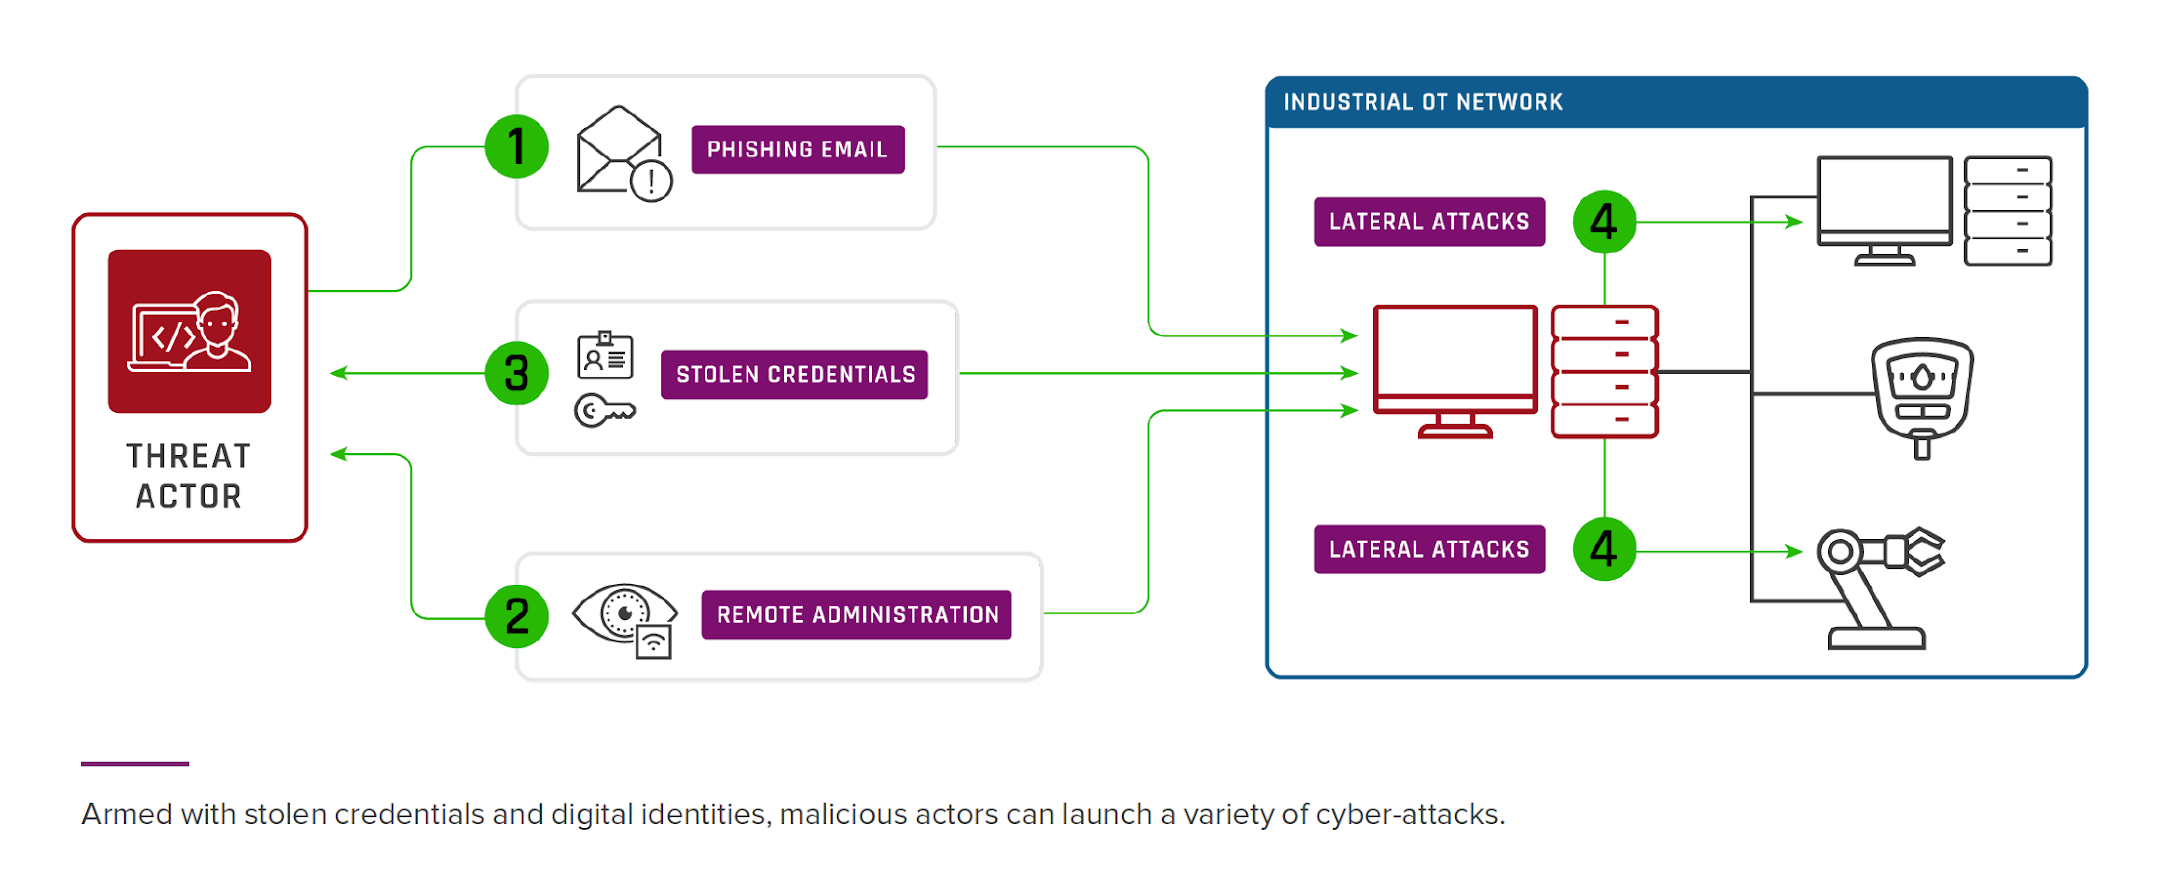 Armed with stolen credentials and digital identities, malicious actors can launch a variety of cyber-attacks.